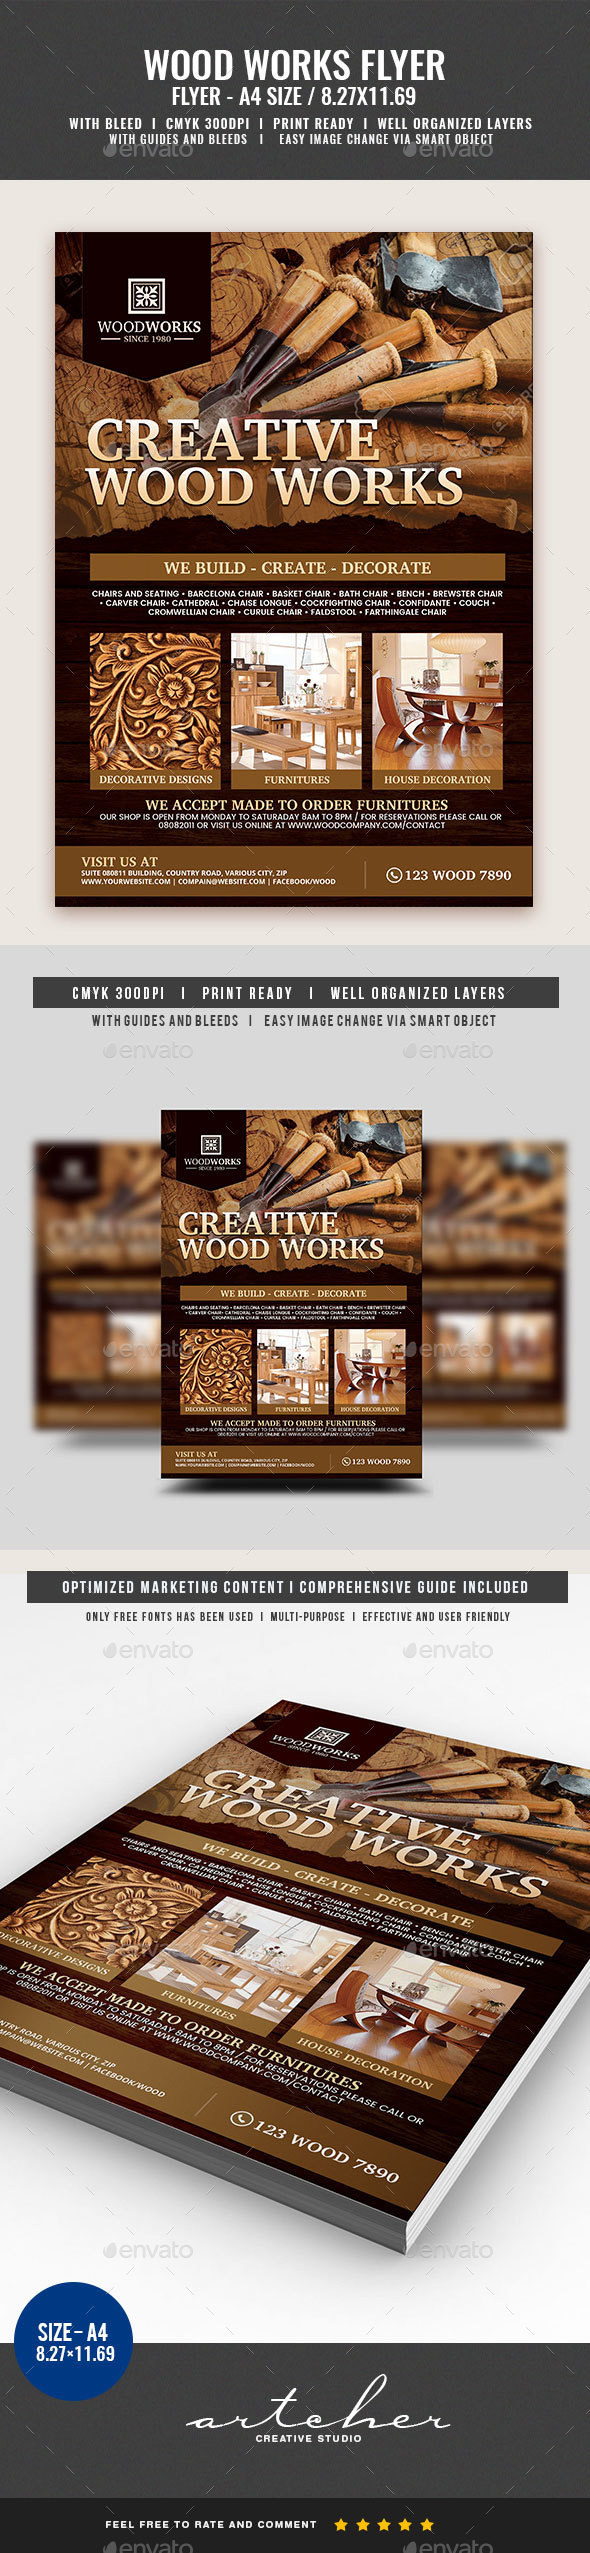 Wood Works and Wood Craft Flyer - Flyers Print Templates